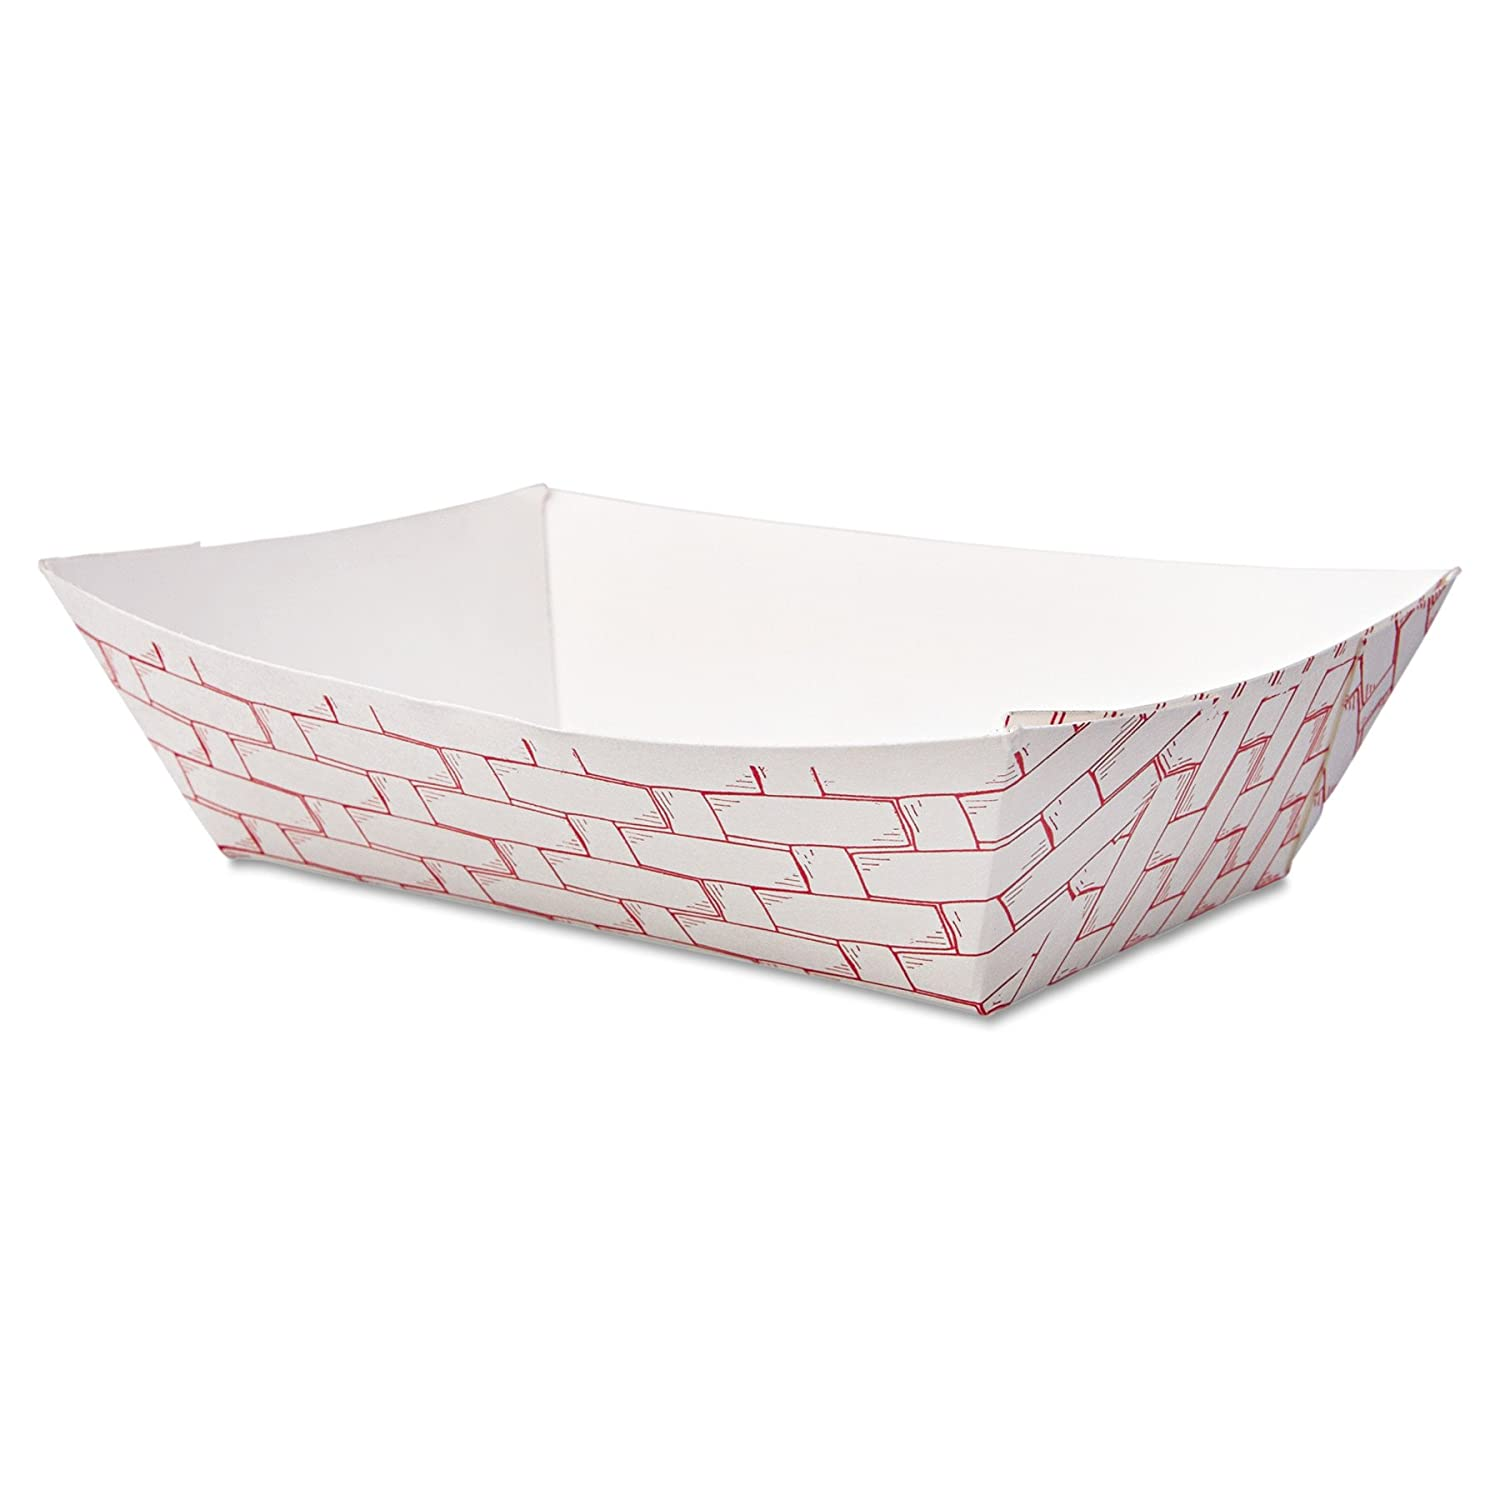 Boardwalk Paper Food Baskets 1 lb Capacity Red//White 1000//Carton 30LAG100